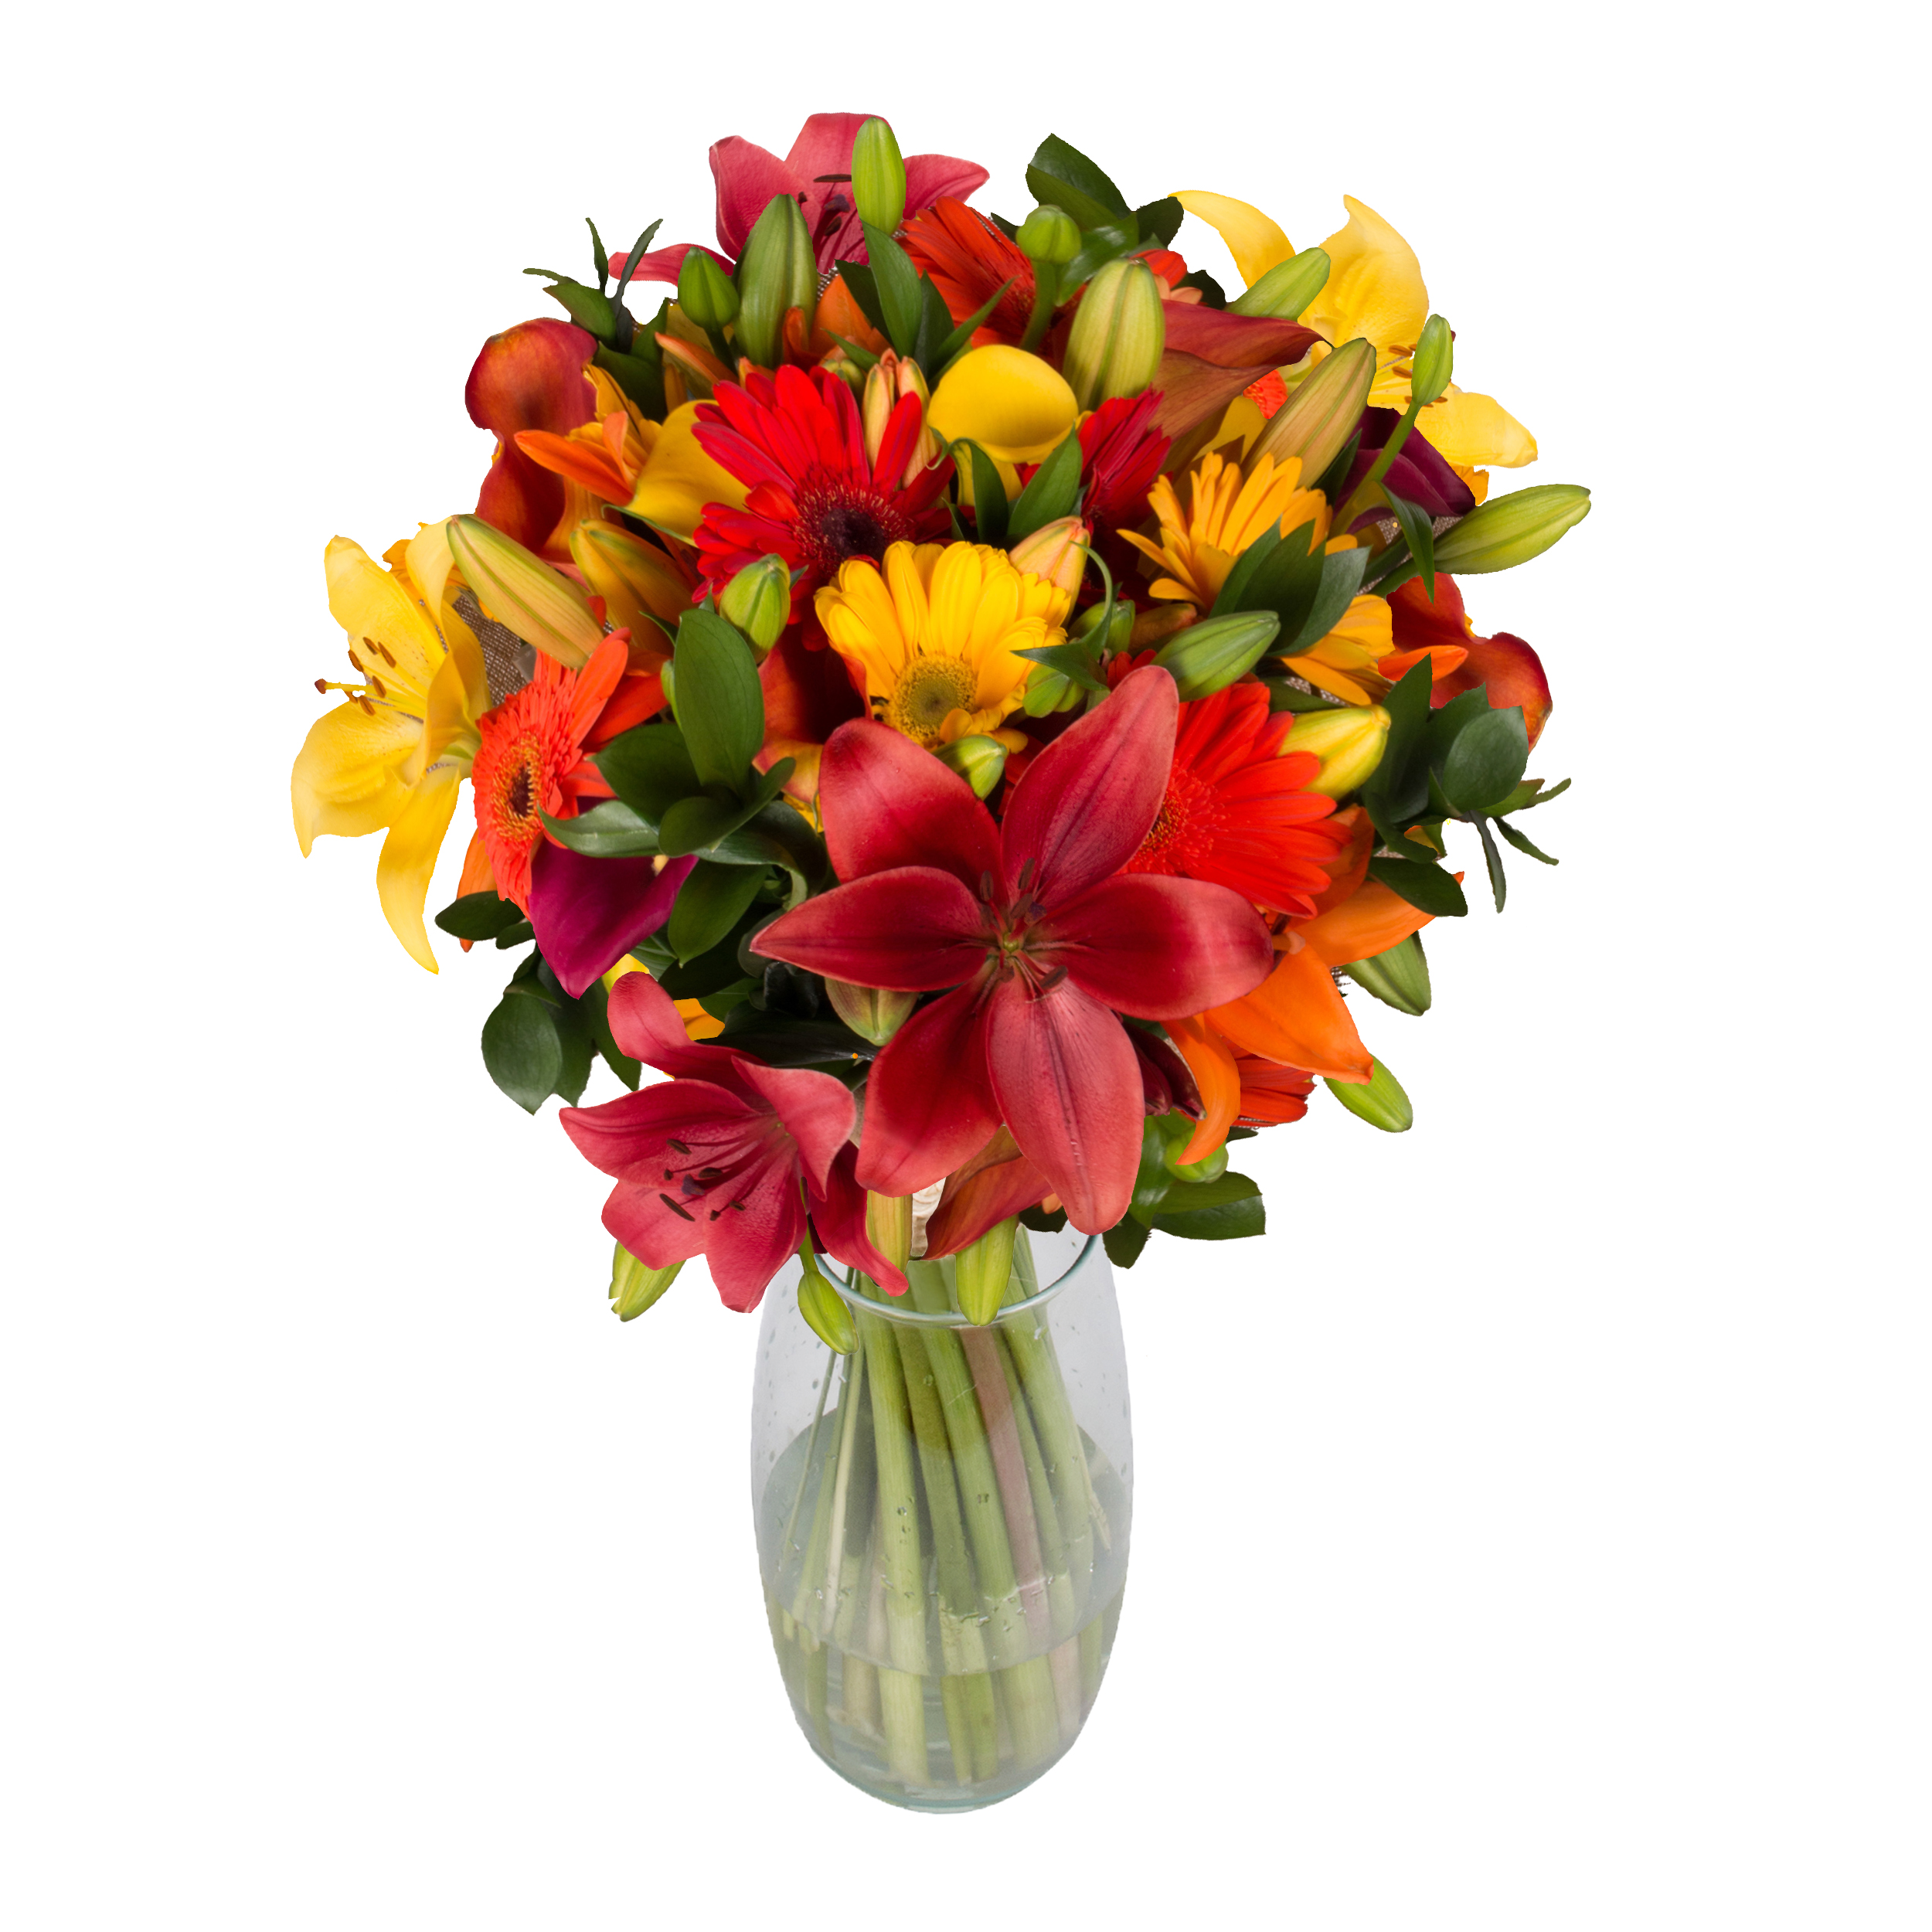 Fall Explosion Bouquet - 31 Stems